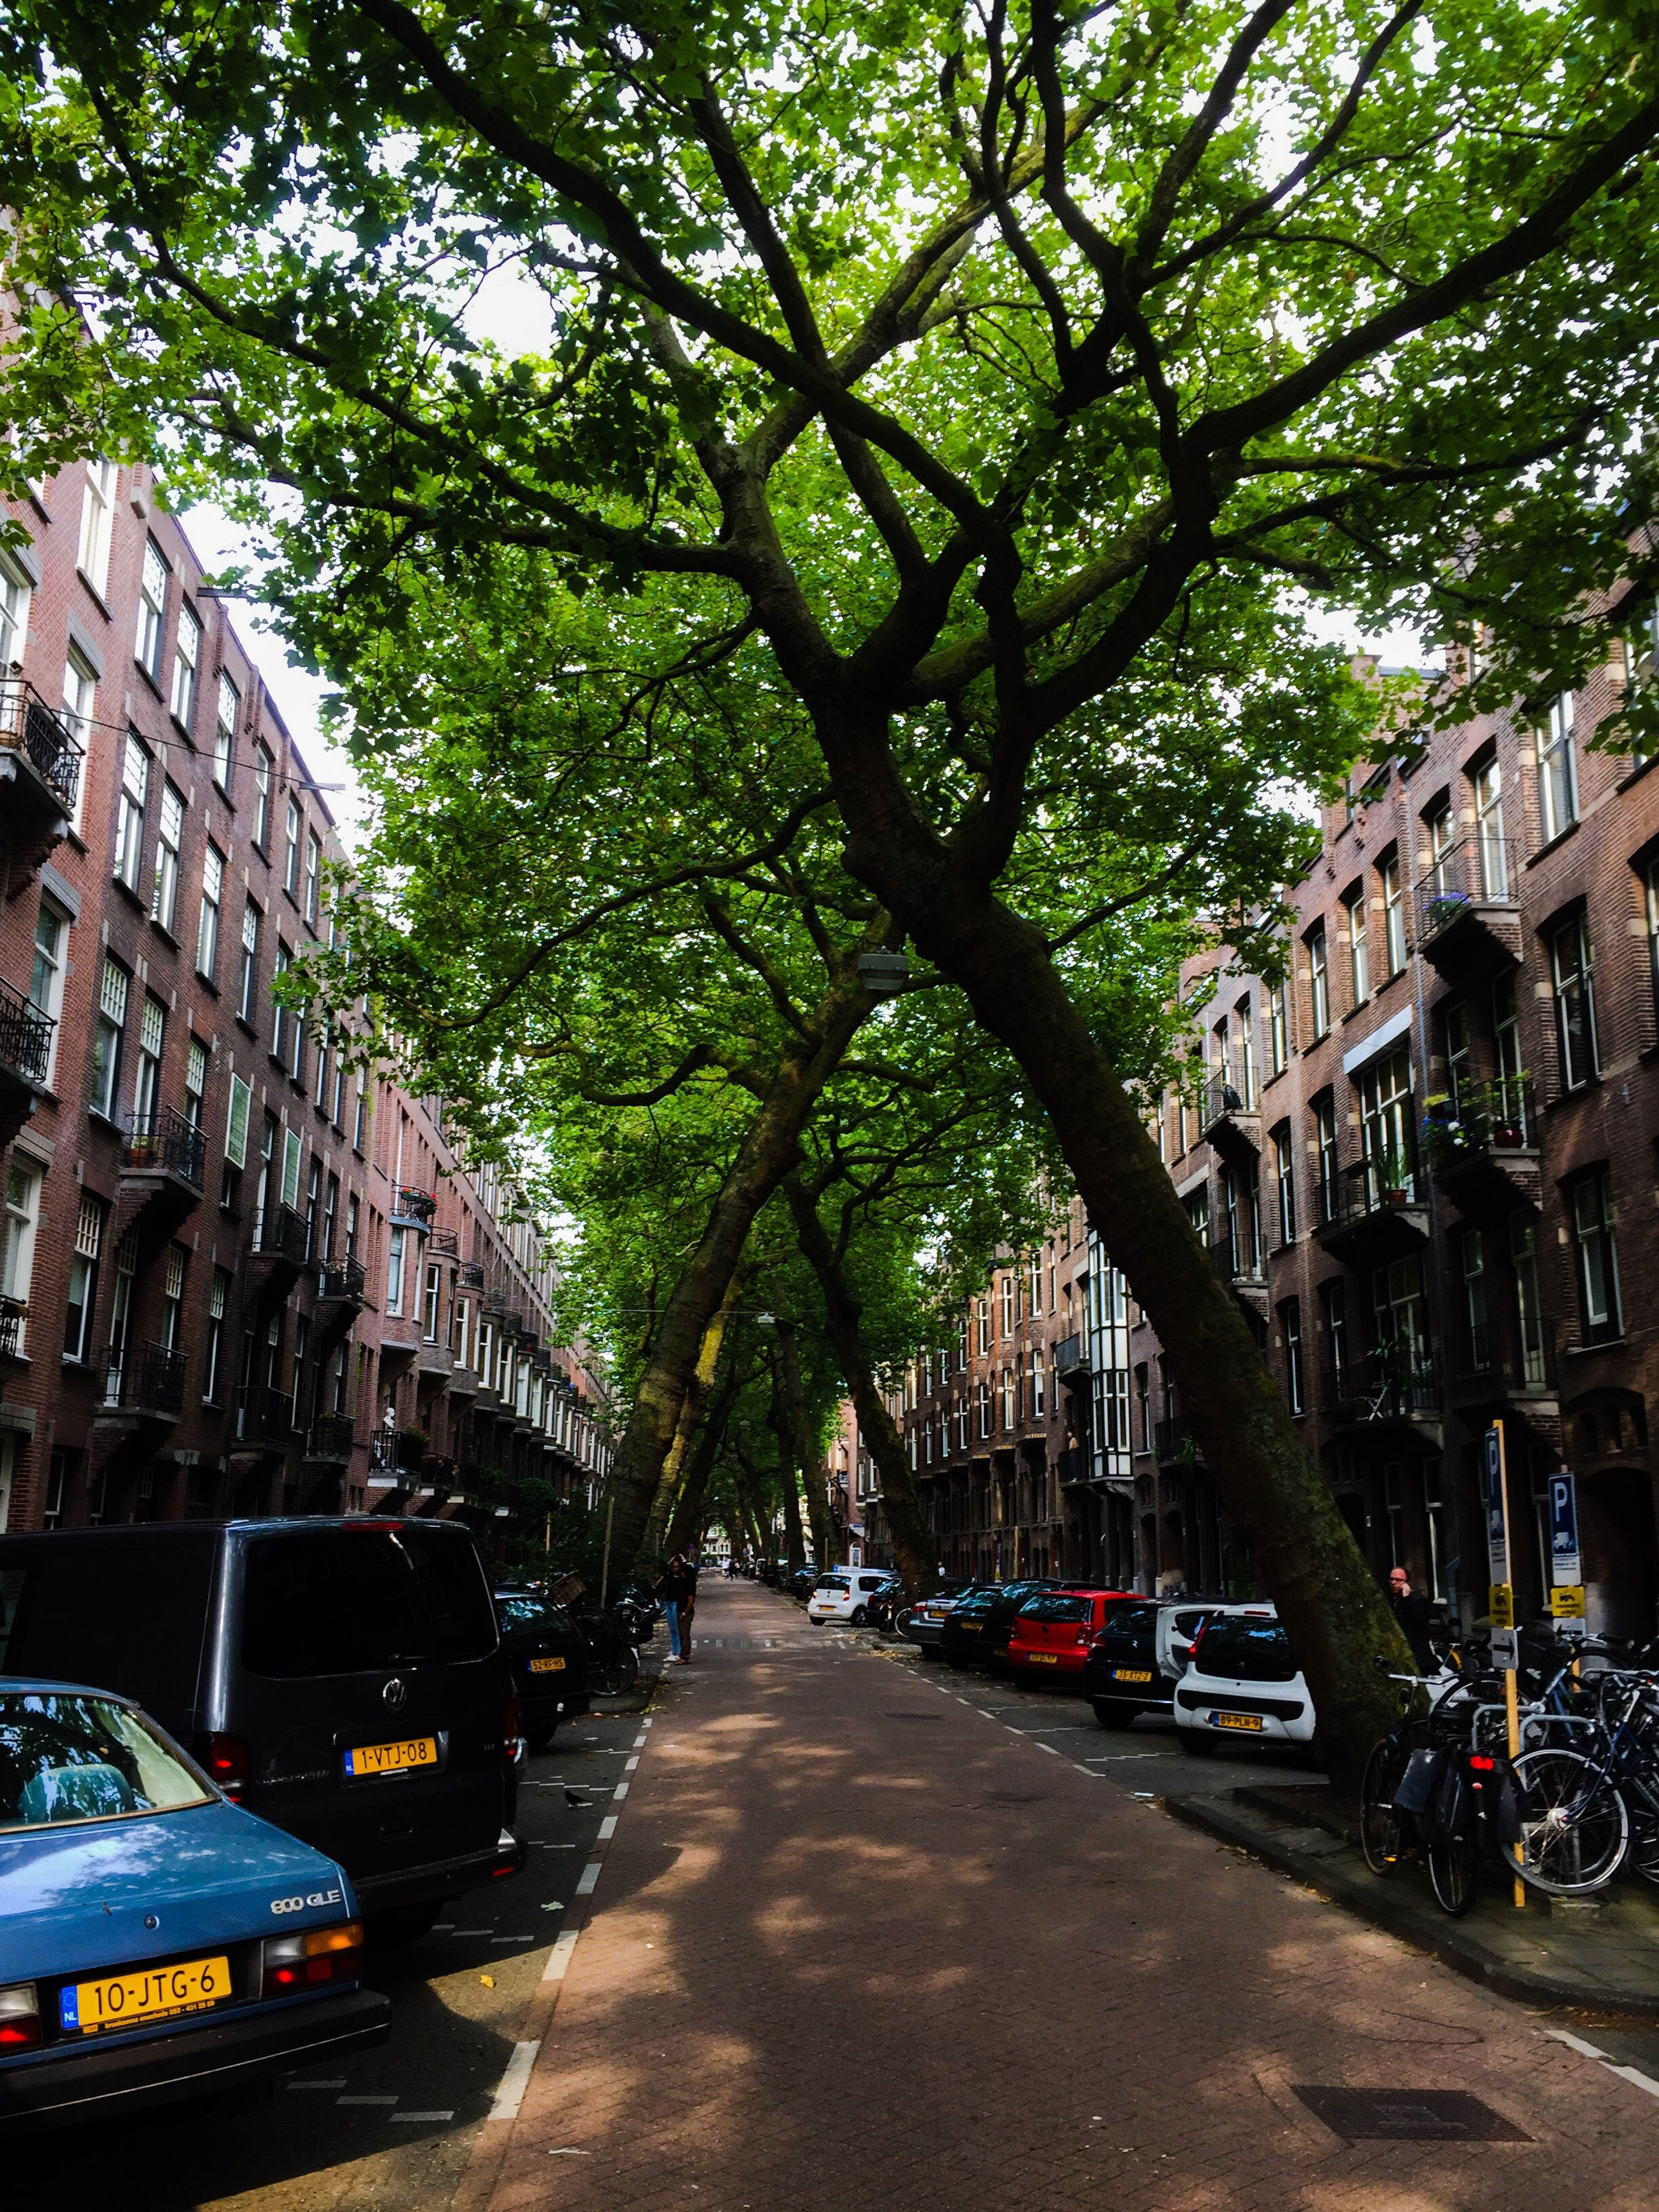 building exterior, transportation, car, built structure, architecture, mode of transport, land vehicle, city, tree, parking, street, stationary, city life, travel, road, roadside, residential structure, residential building, parked, in a row, tree trunk, city street, branch, residential district, travel destinations, vehicle, the way forward, outdoors, stationery, day, growth, in front of, rush hour